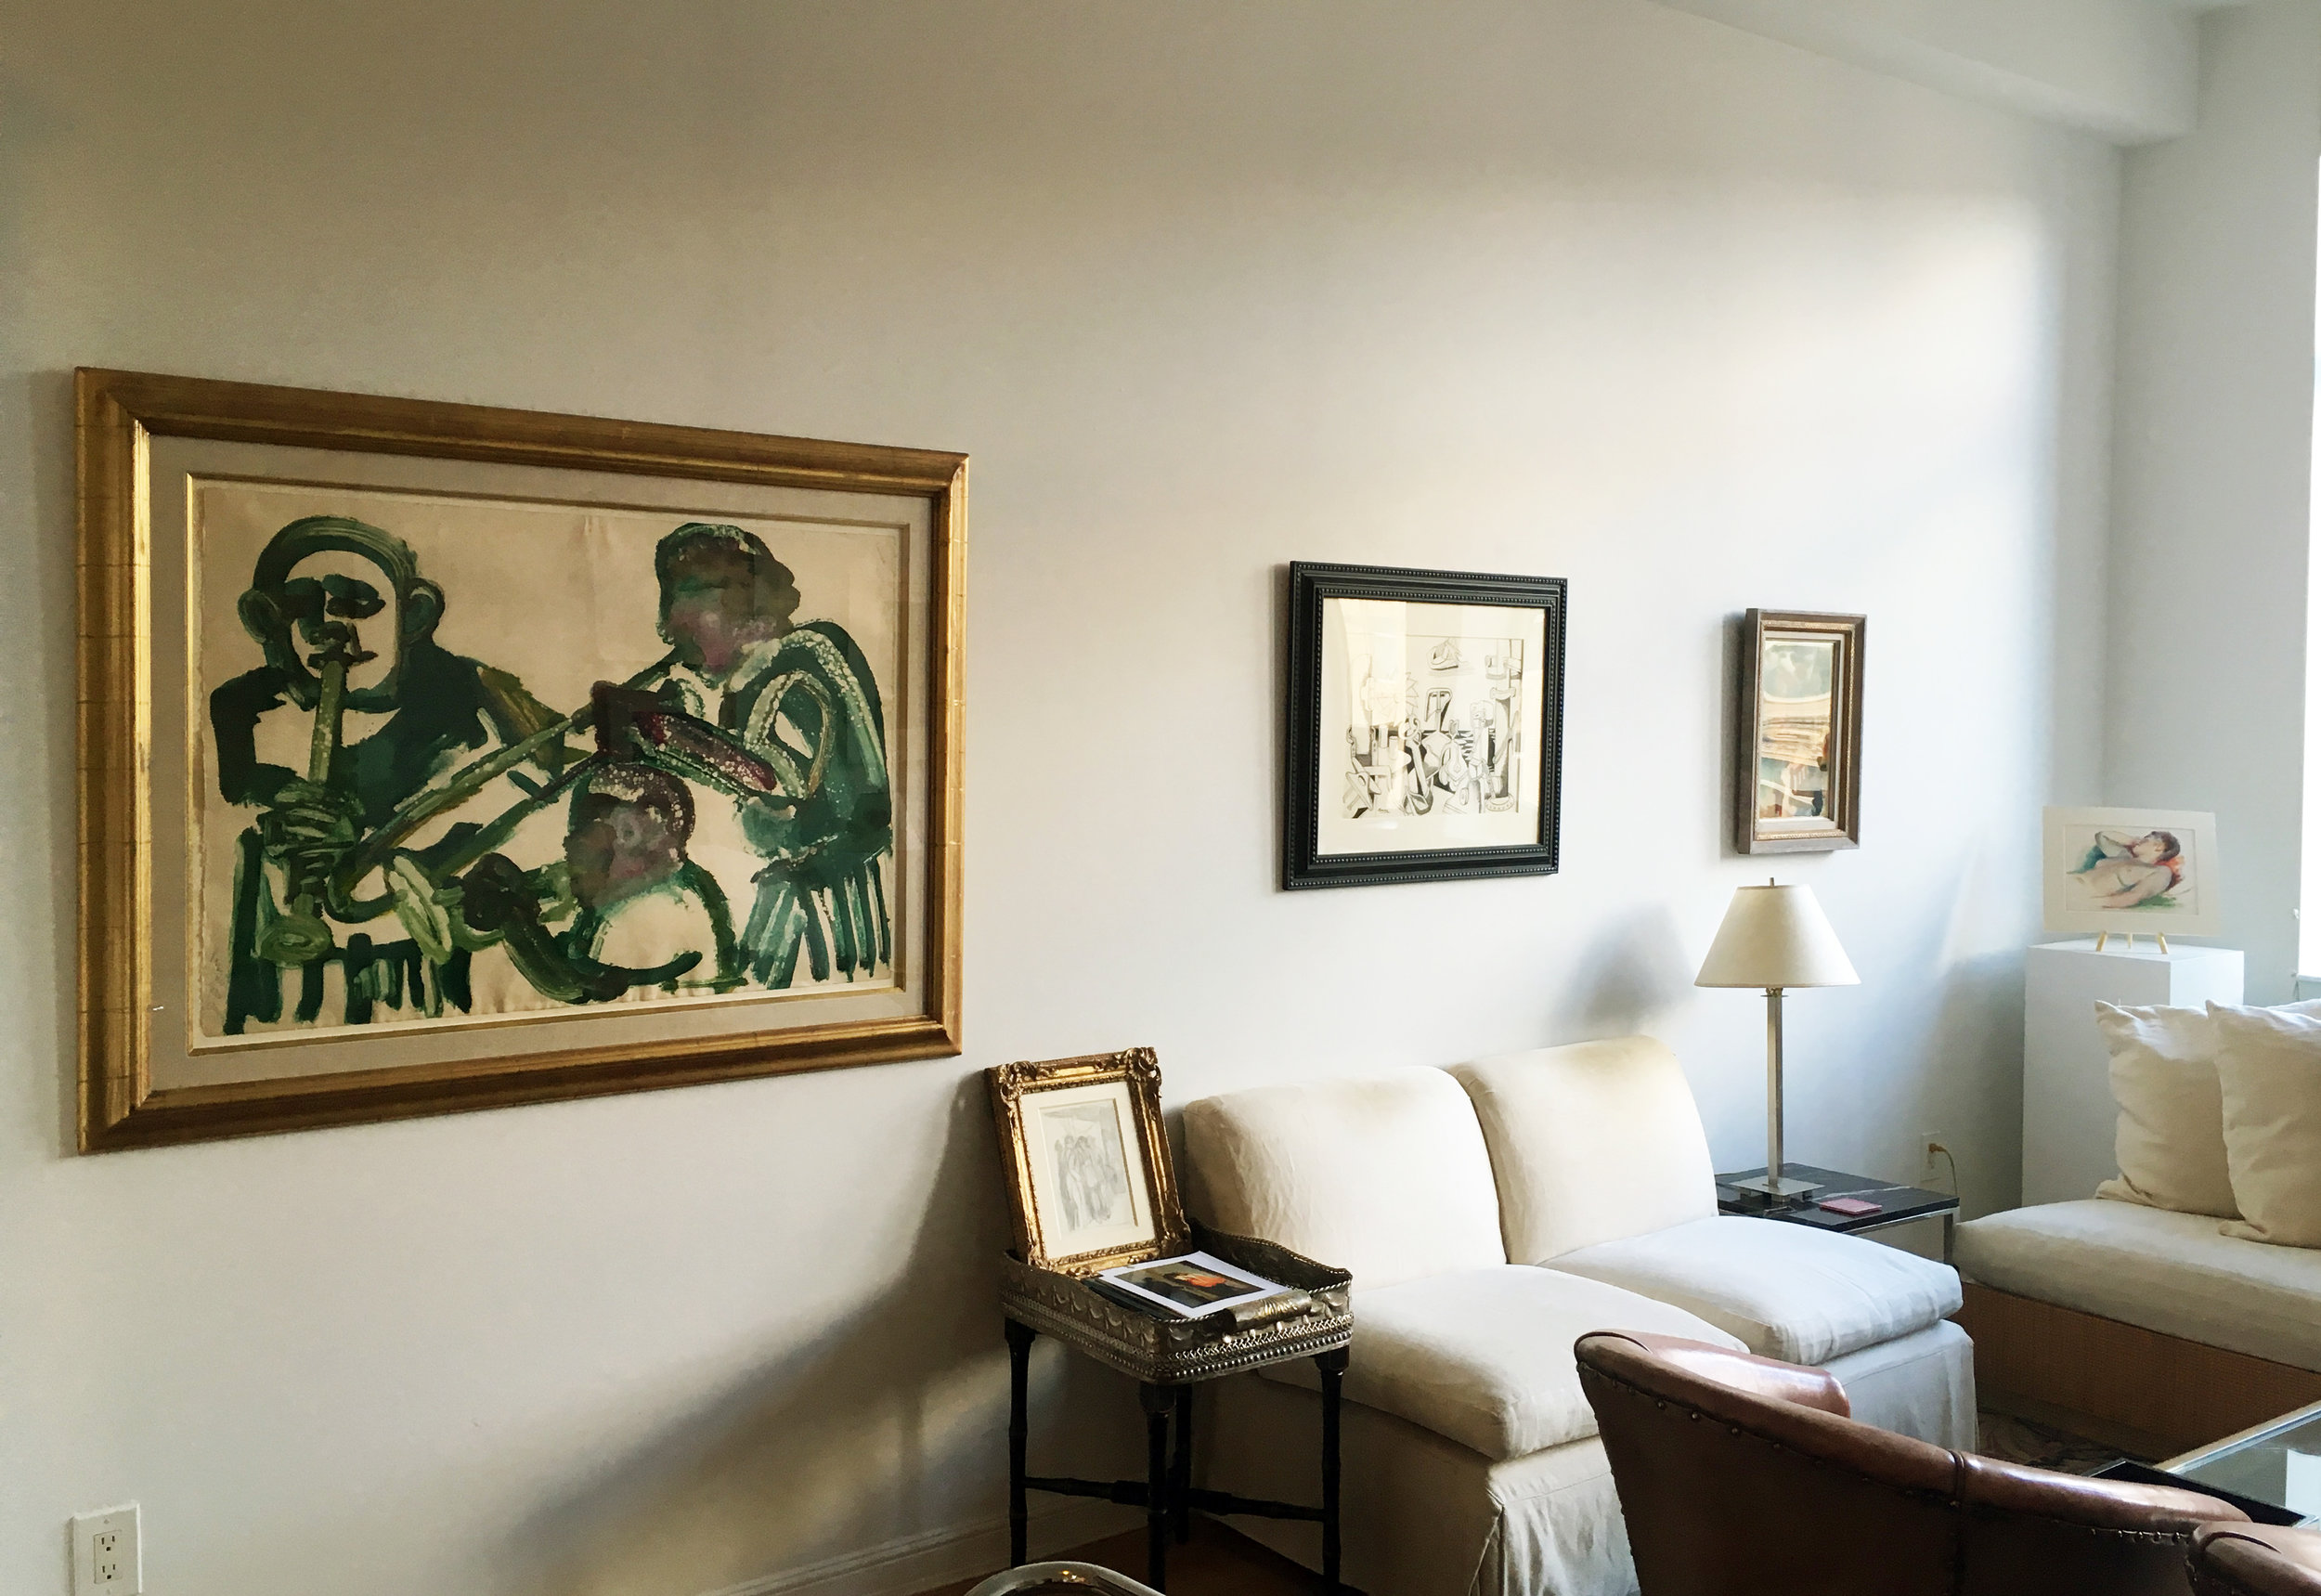 Pictured (left to right): Romare Bearden,  Jazz Trio  (1986'-'87); Jan Matulka,  Cape Ann Still Life  (ca. 1929); George Grosz,  City Scene  (1933); Guy Pene du Bois,  Stephanie  (1941)